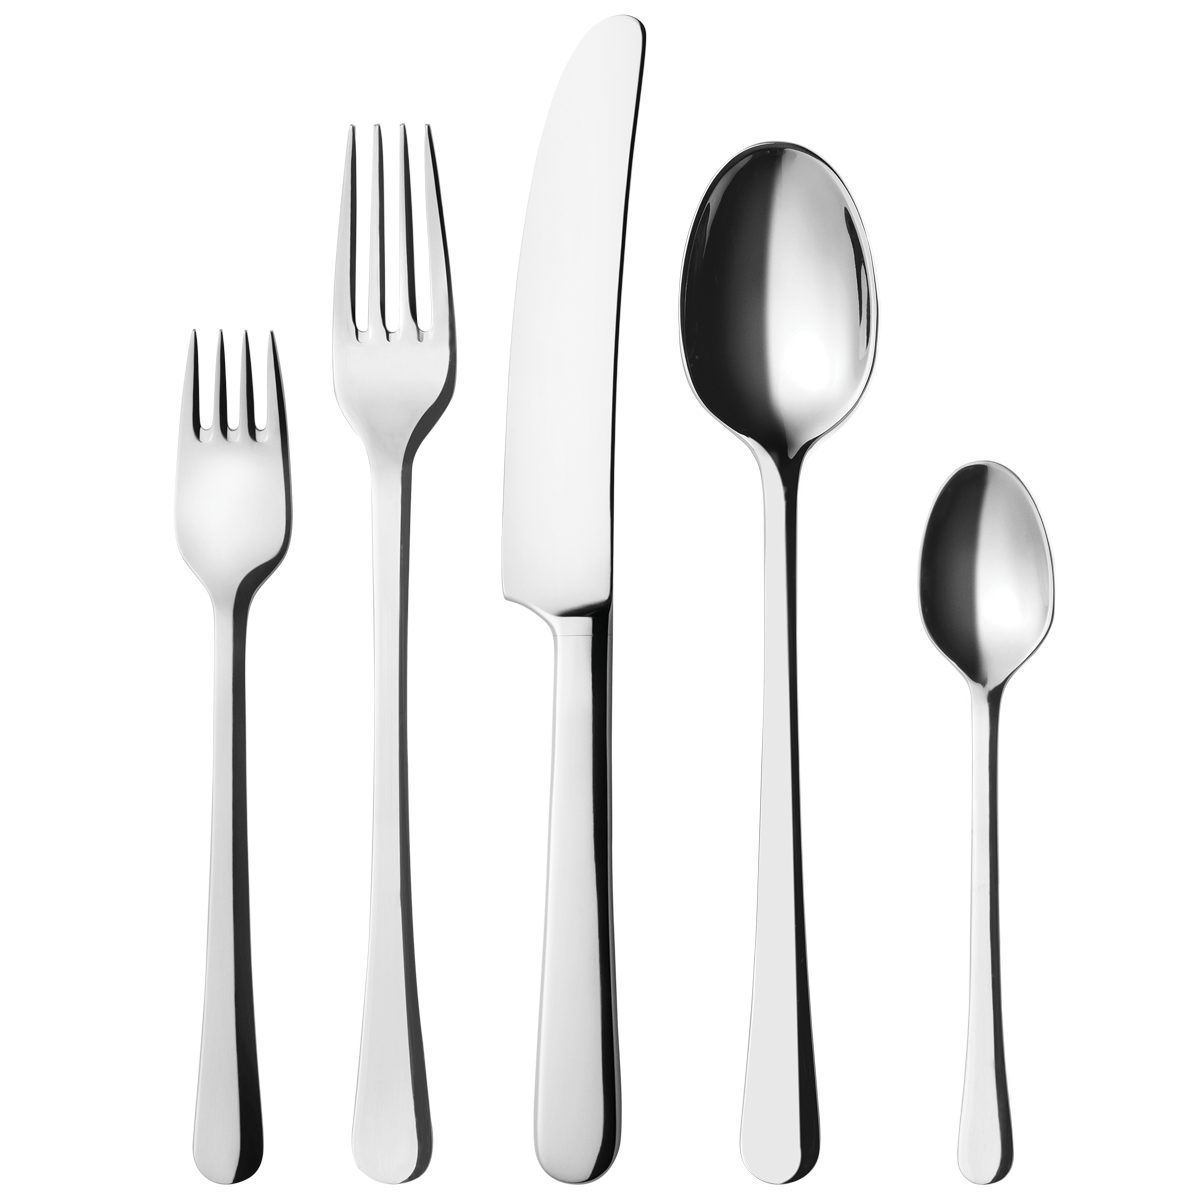 Spoon and fork png. Knife free icons backgrounds